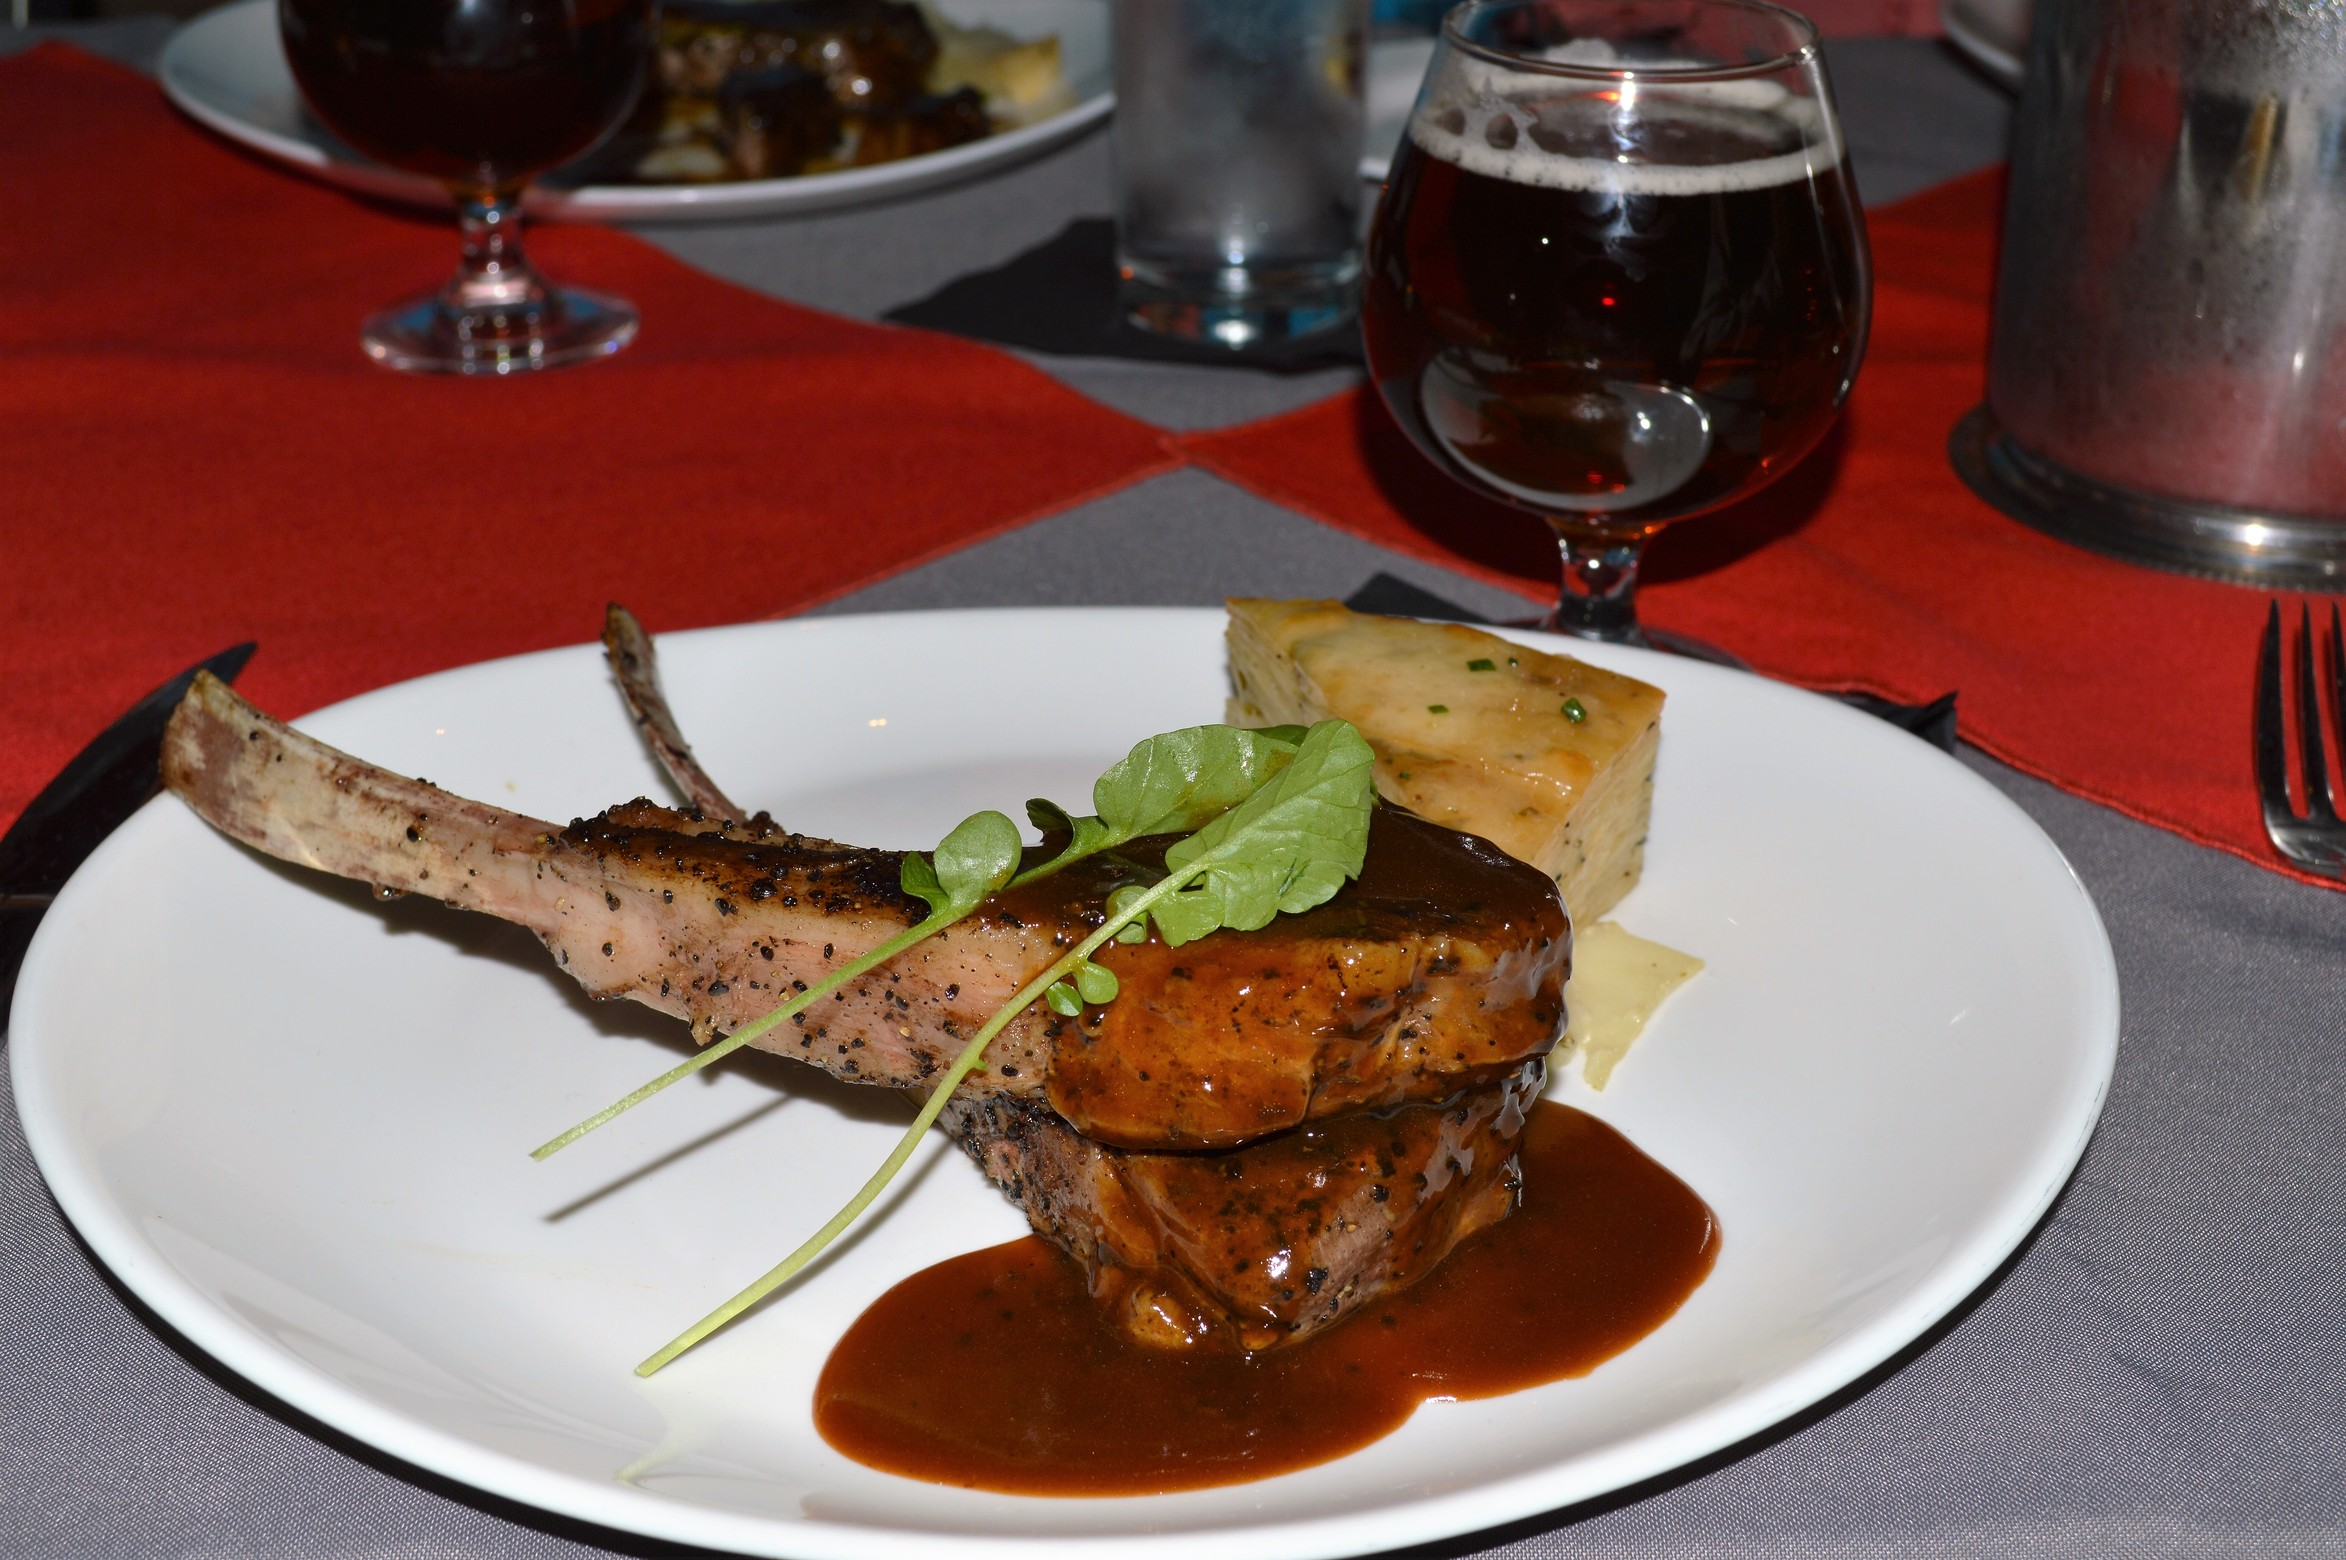 Expresso-encrusted Colorado lamb lollipops, white cheddar potato gratin, and water cress, with a 90 Schilling demi-glace.